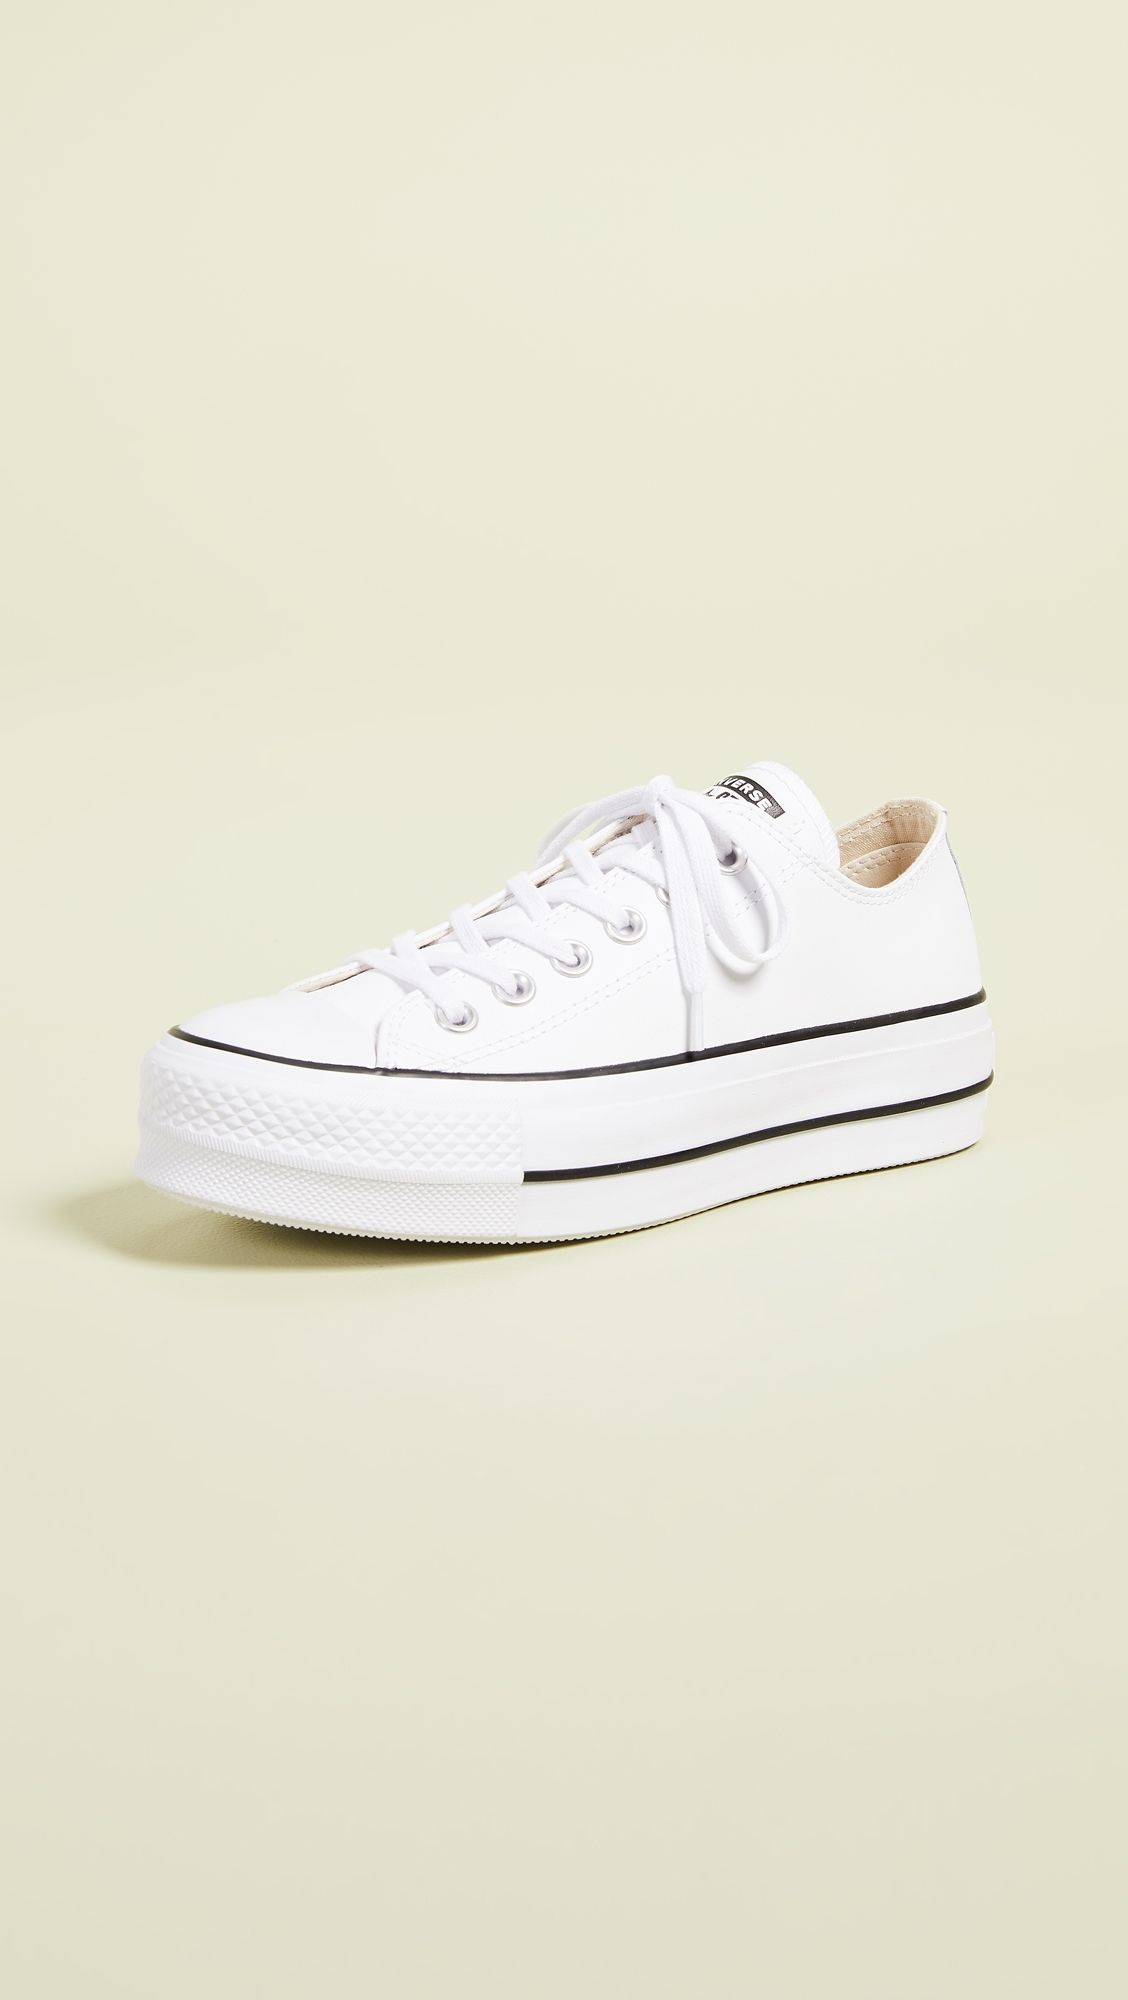 Converse Chuck All Star Lift Clean Ox Sneakers Converse Sneakers Sport Shoes Women